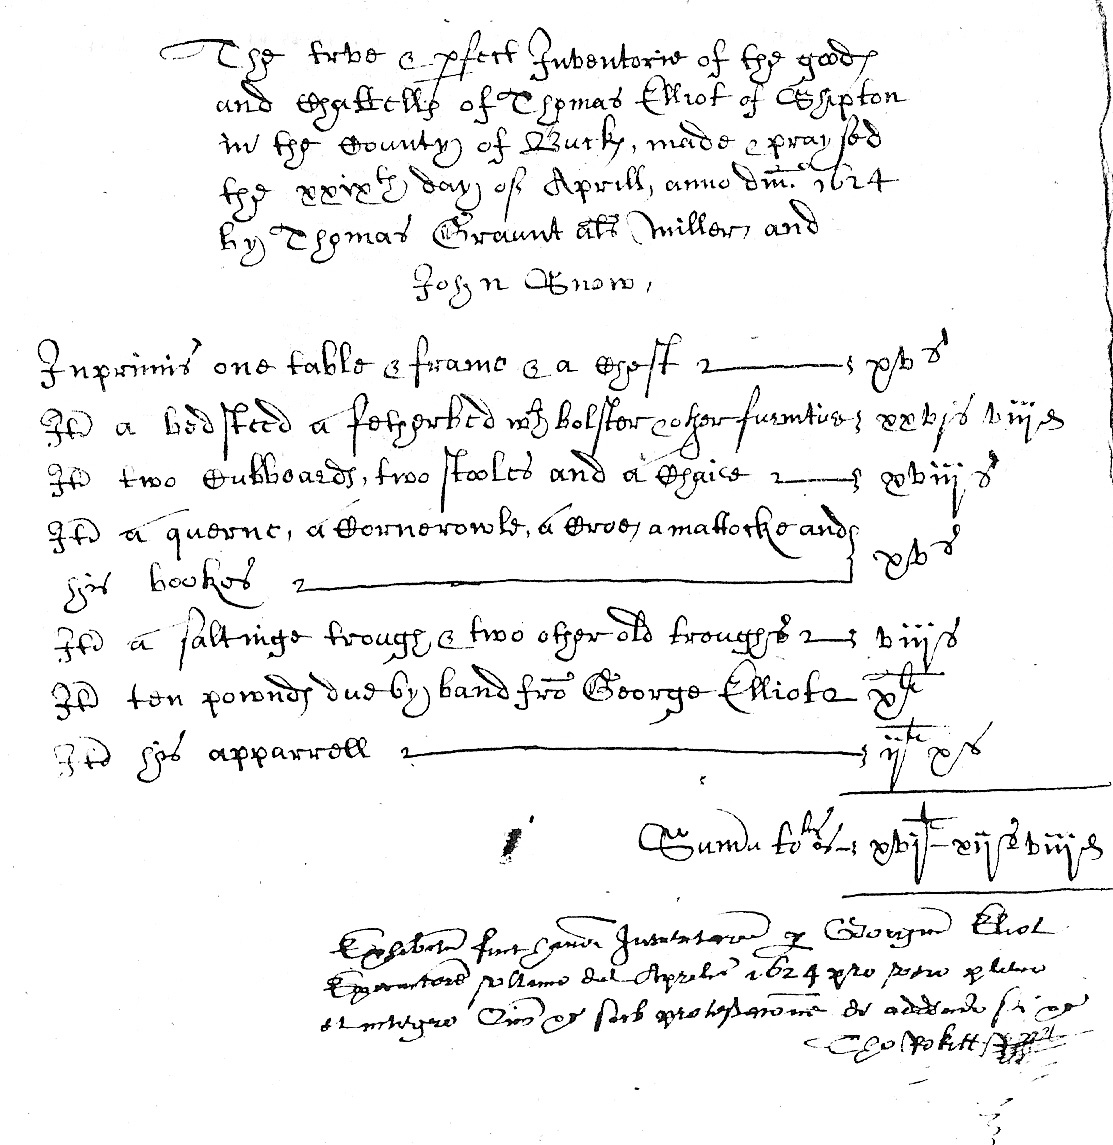 Inventory of Thomas Elliott